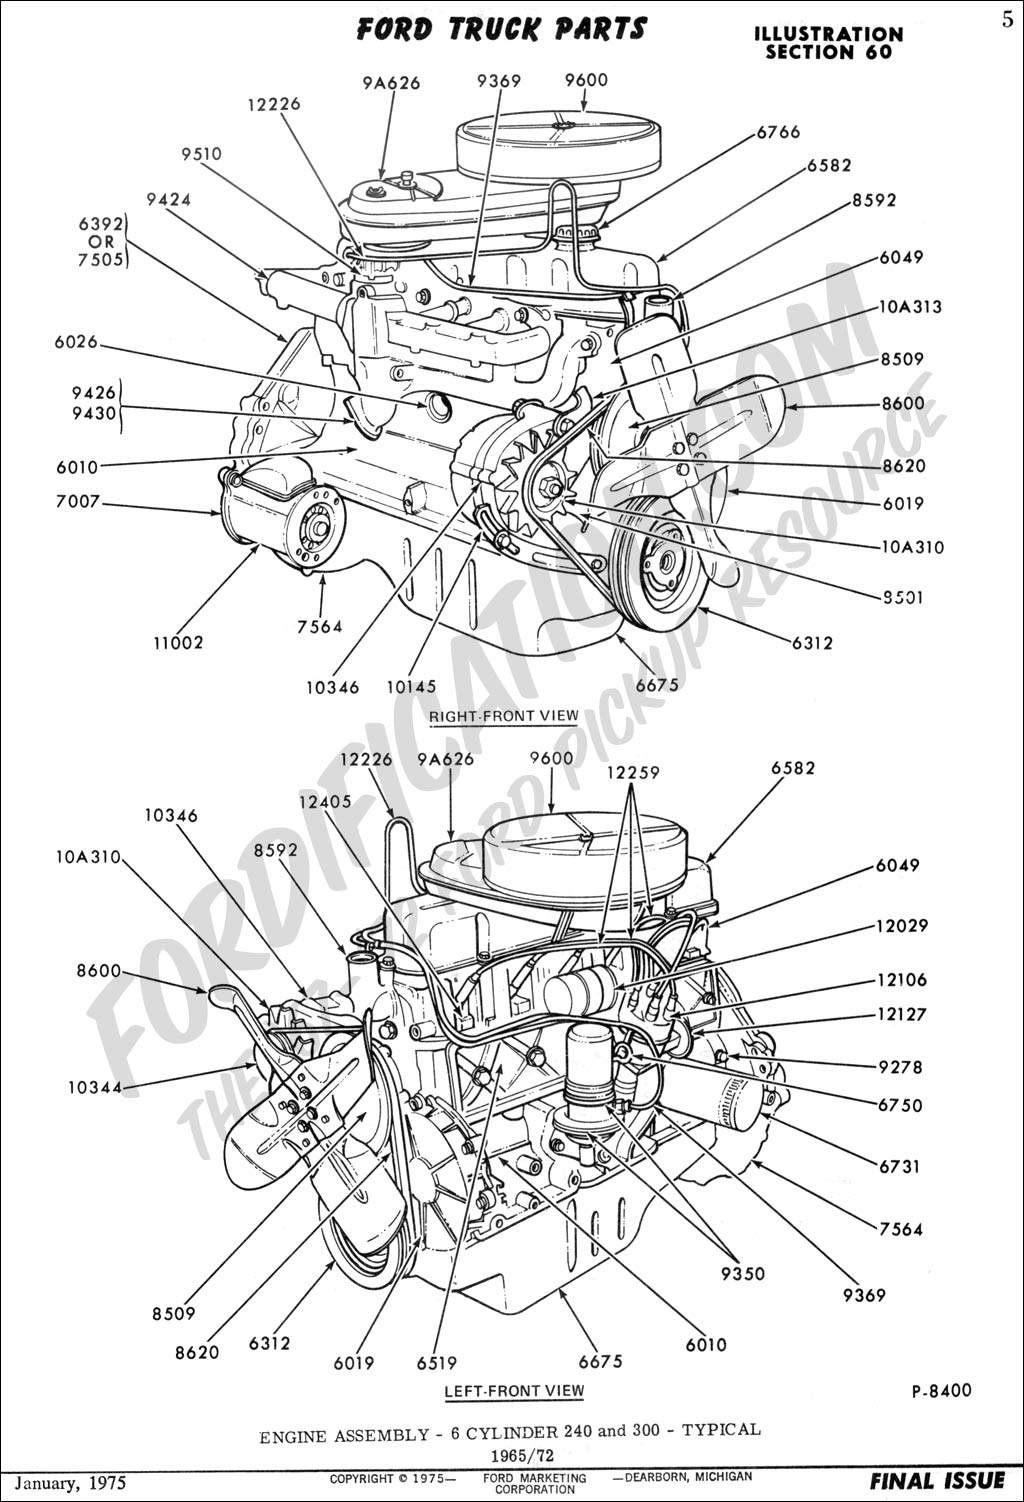 Marvelous 289 Ford Engine Diagram Electrical Wiring Diagrams Wiring Cloud Picalendutblikvittorg